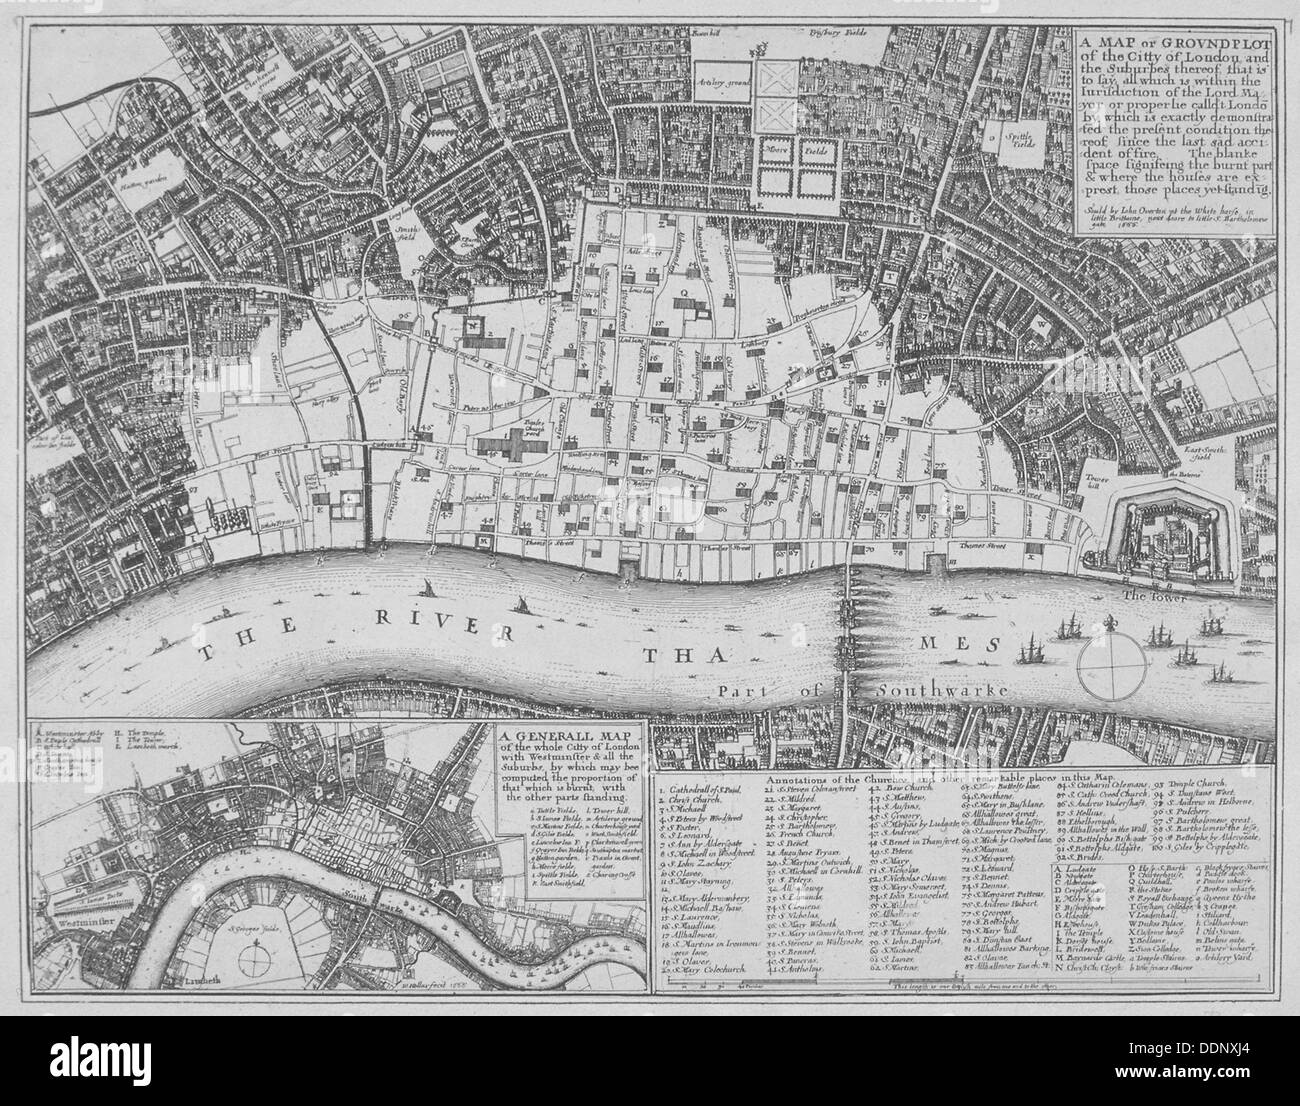 Map showing the extent of the damage caused by the Great Fire of London, 1666. Artist: Wenceslaus Hollar - Stock Image